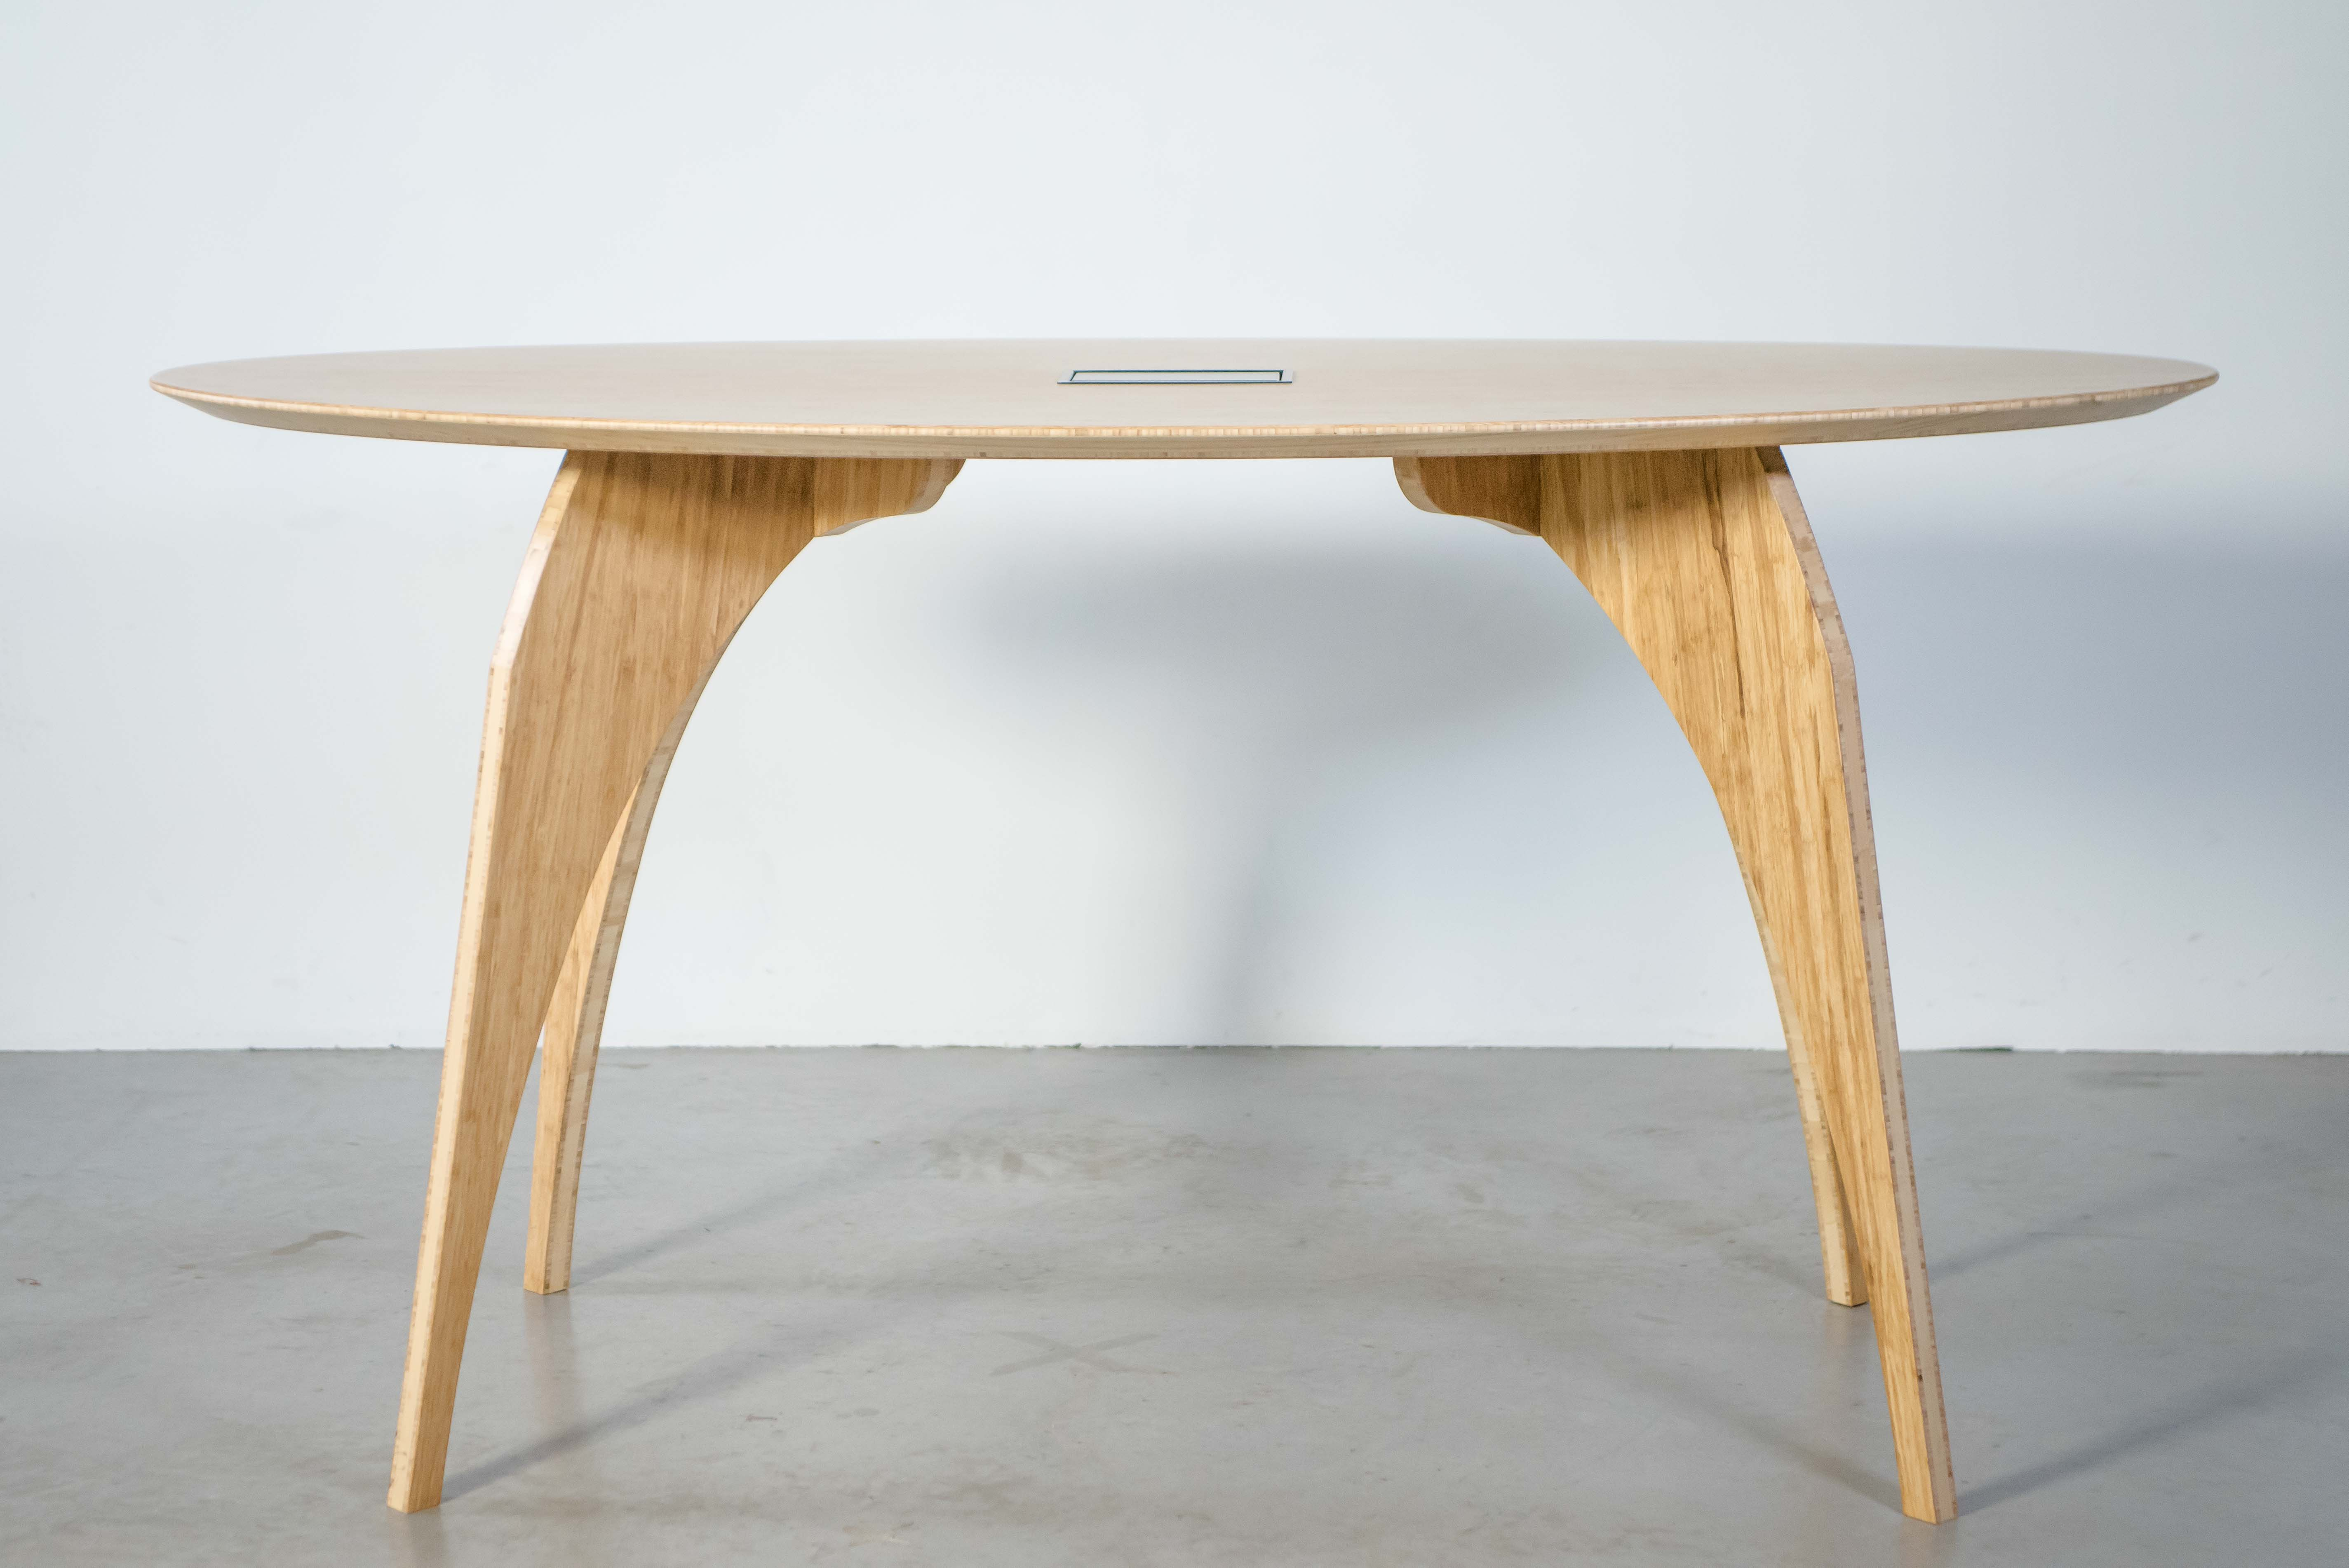 Wooden Standing Meeting Table - MeetUp